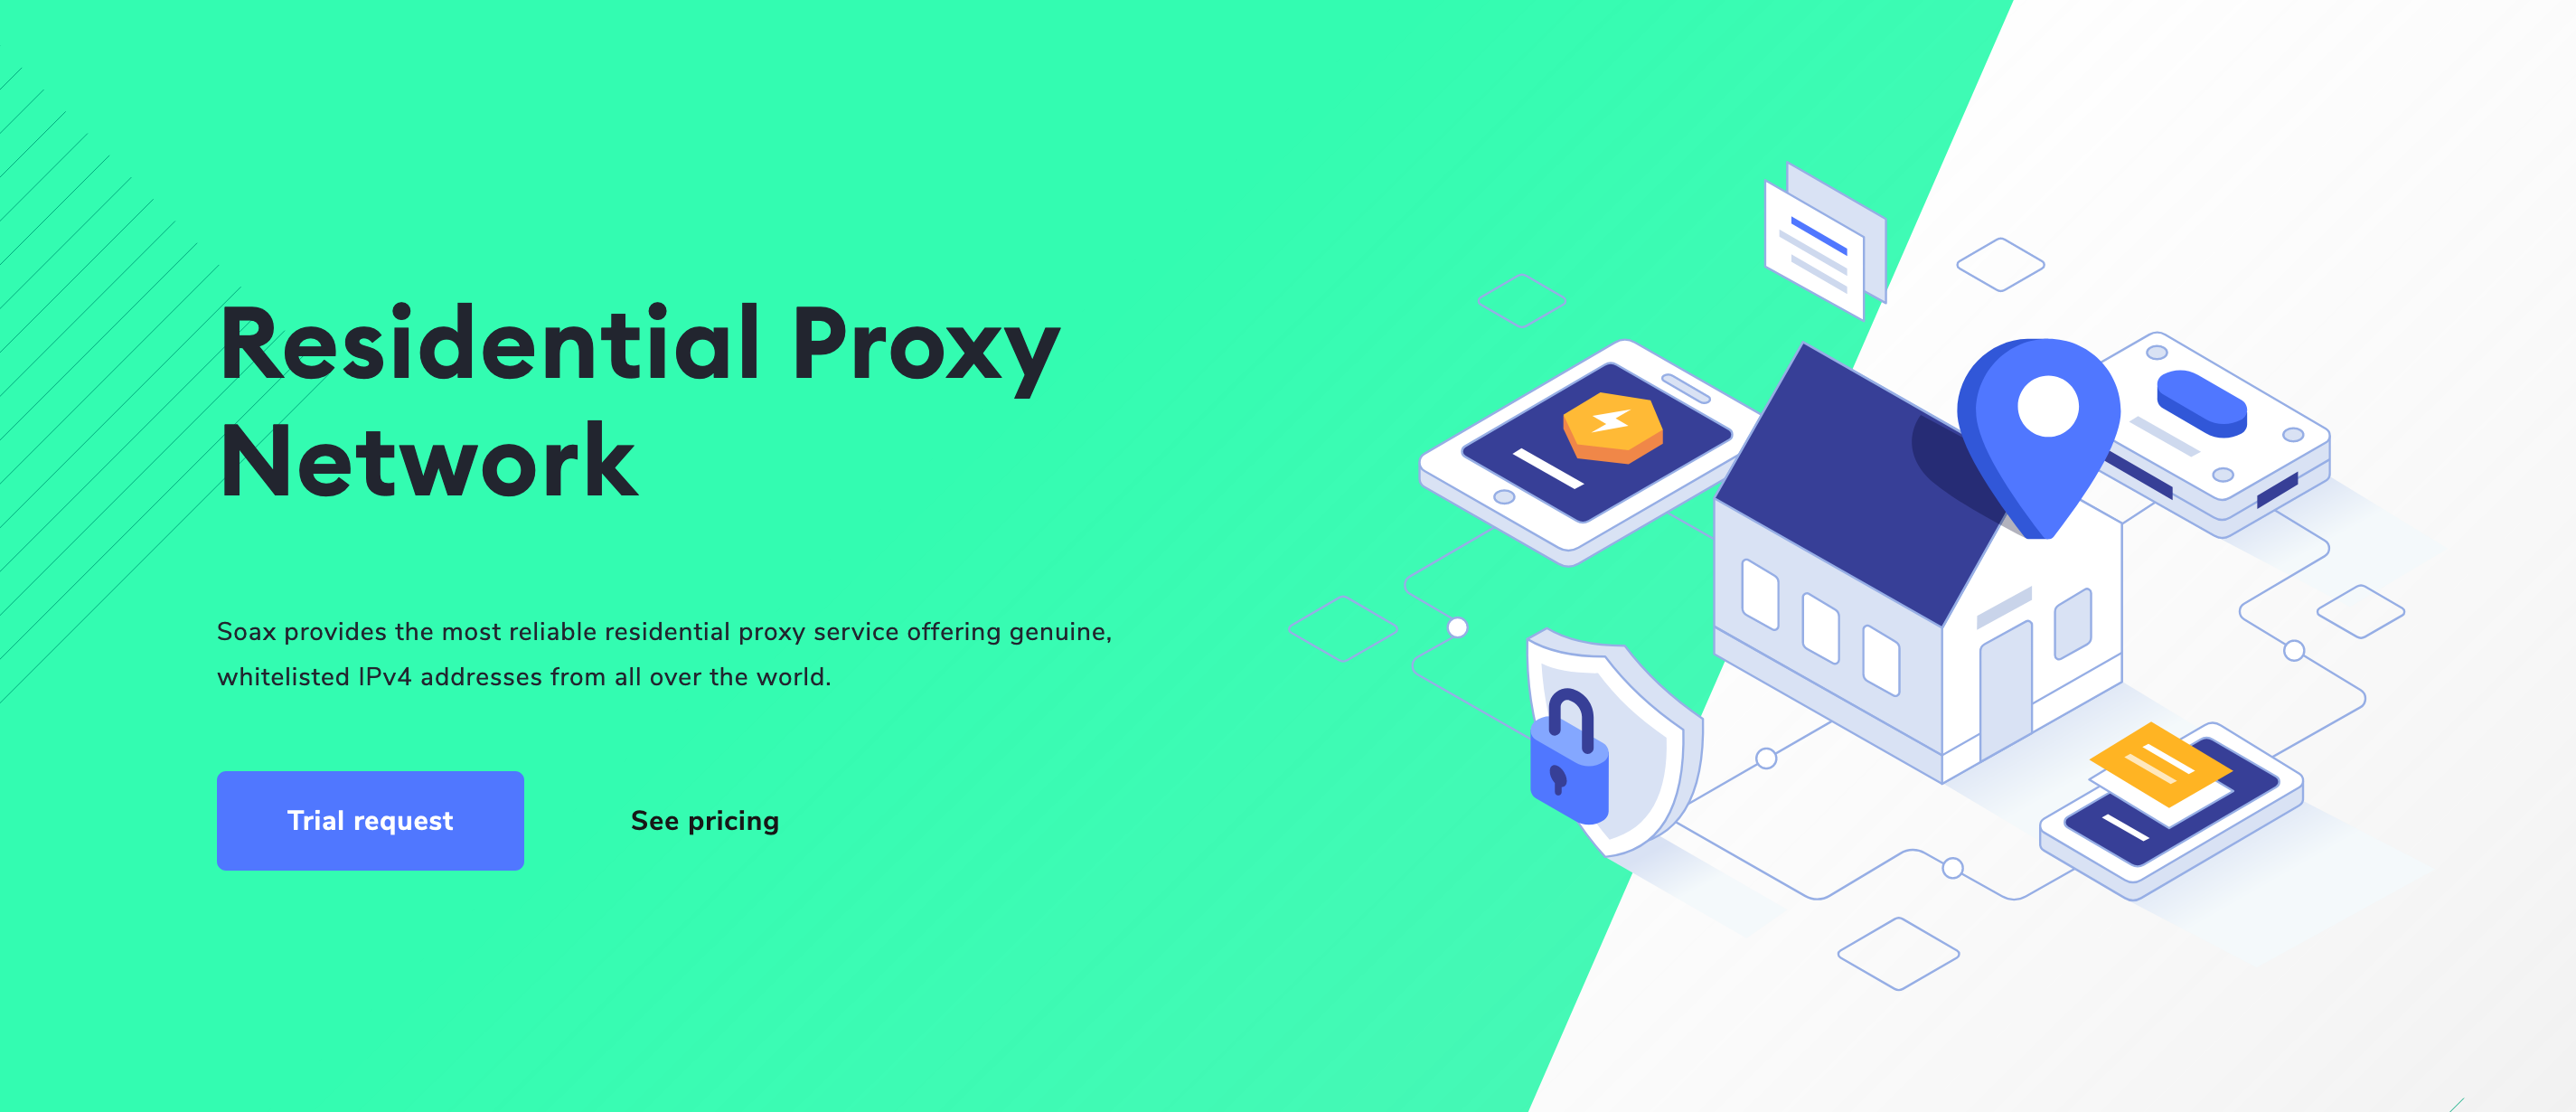 soax residential proxies page